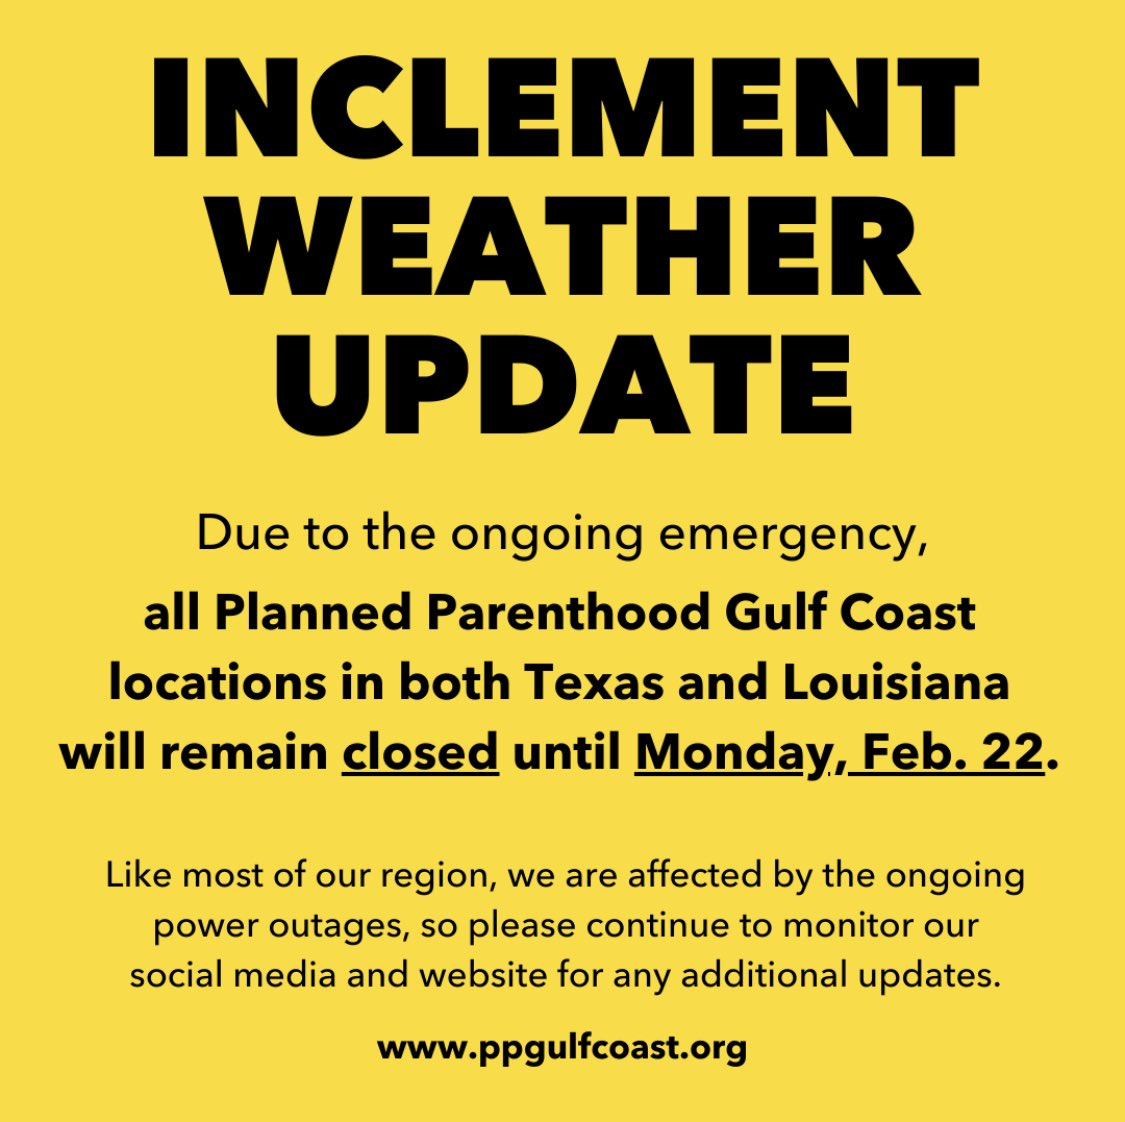 🚨UPDATE: All PPGC locations in Texas and Louisiana will remain CLOSED until Monday, 2/22.🚨 We are affected by continued power outages, so please check social media and  for updates. Stay safe.